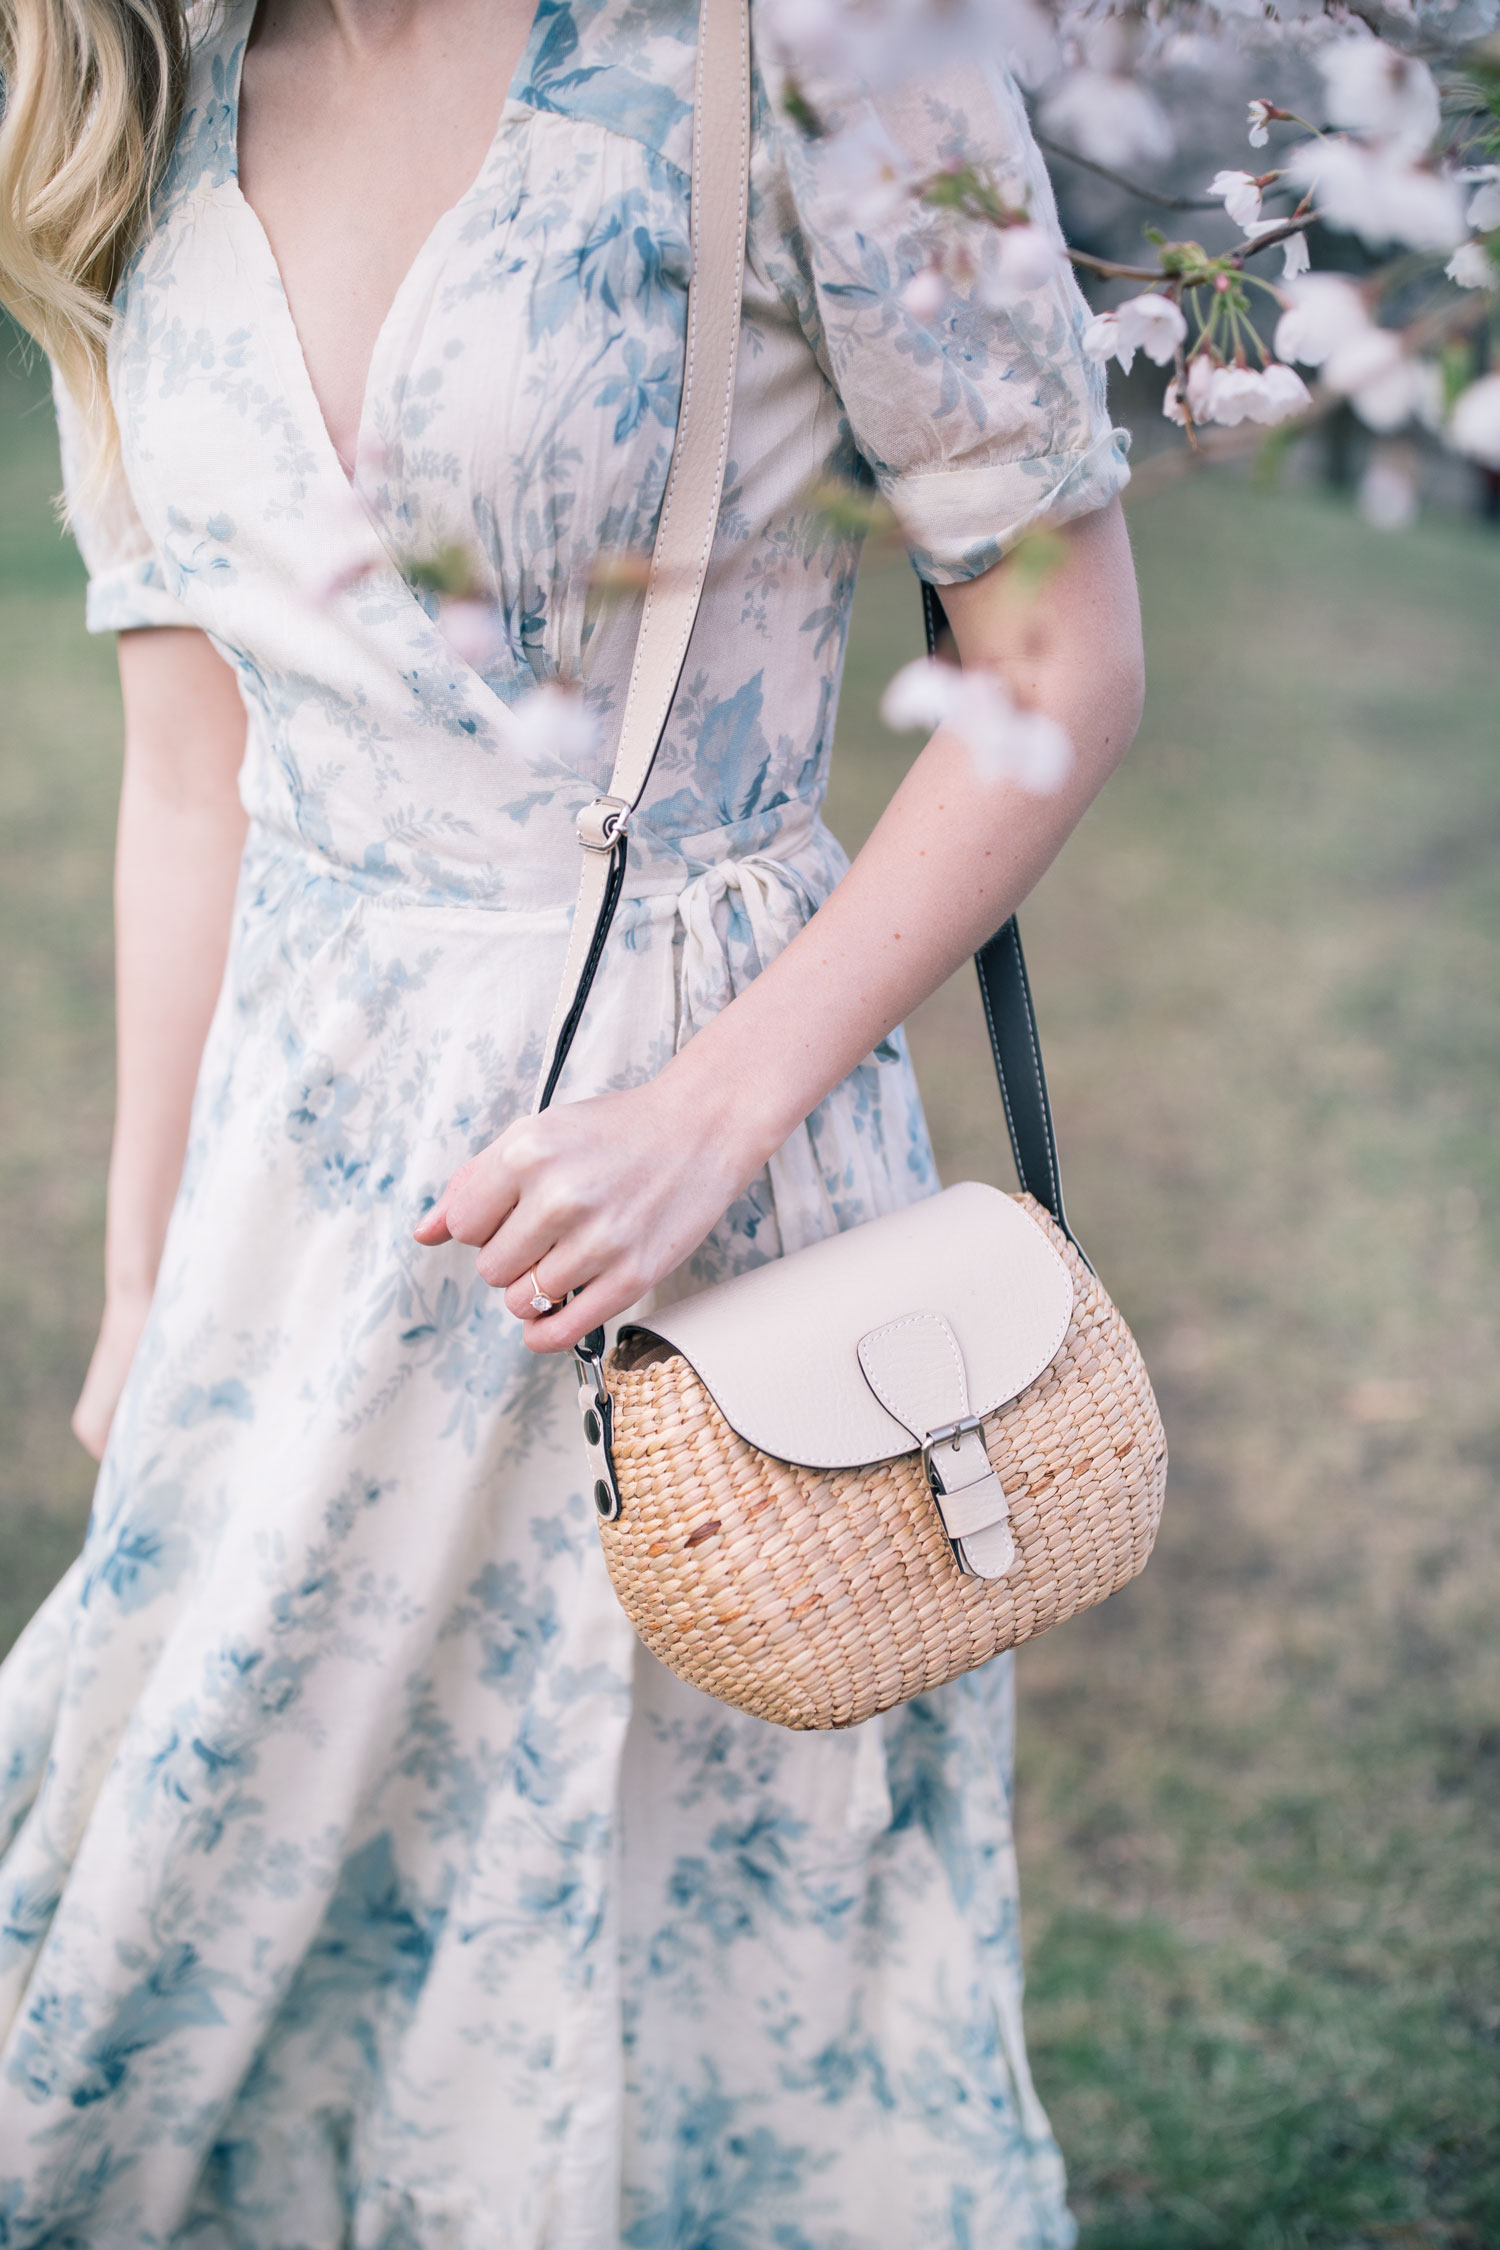 57f7d22331c1e1 Happy Tuesday friends, I hope you all had a great long Canadian weekend.  I've been meaning to share a round-up of my favorite straw/wicker bags and  clutches ...